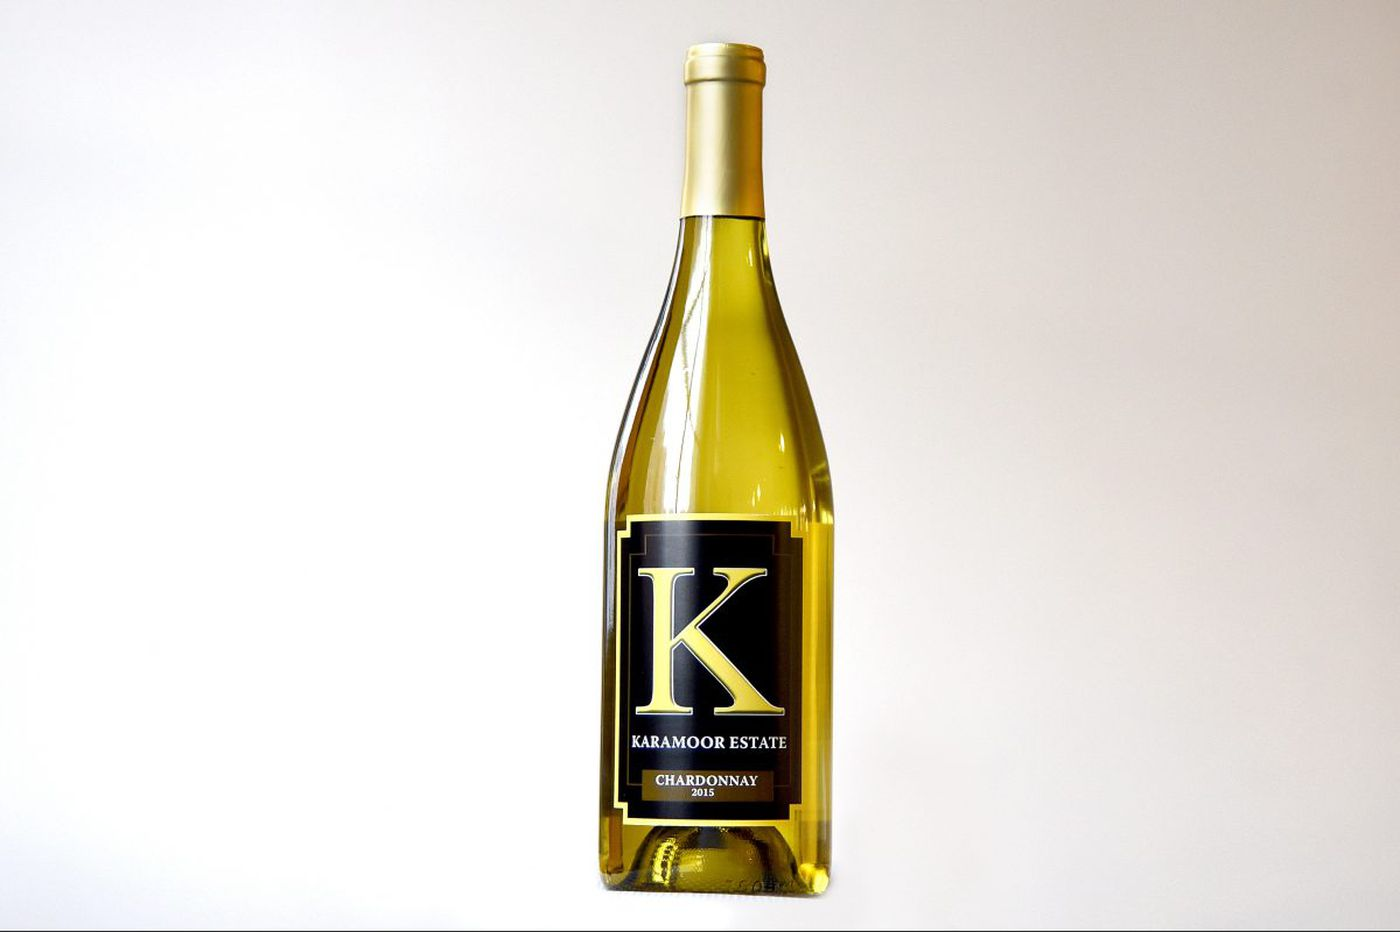 Karamoor wins gold - and boosts charity - with chardonnay